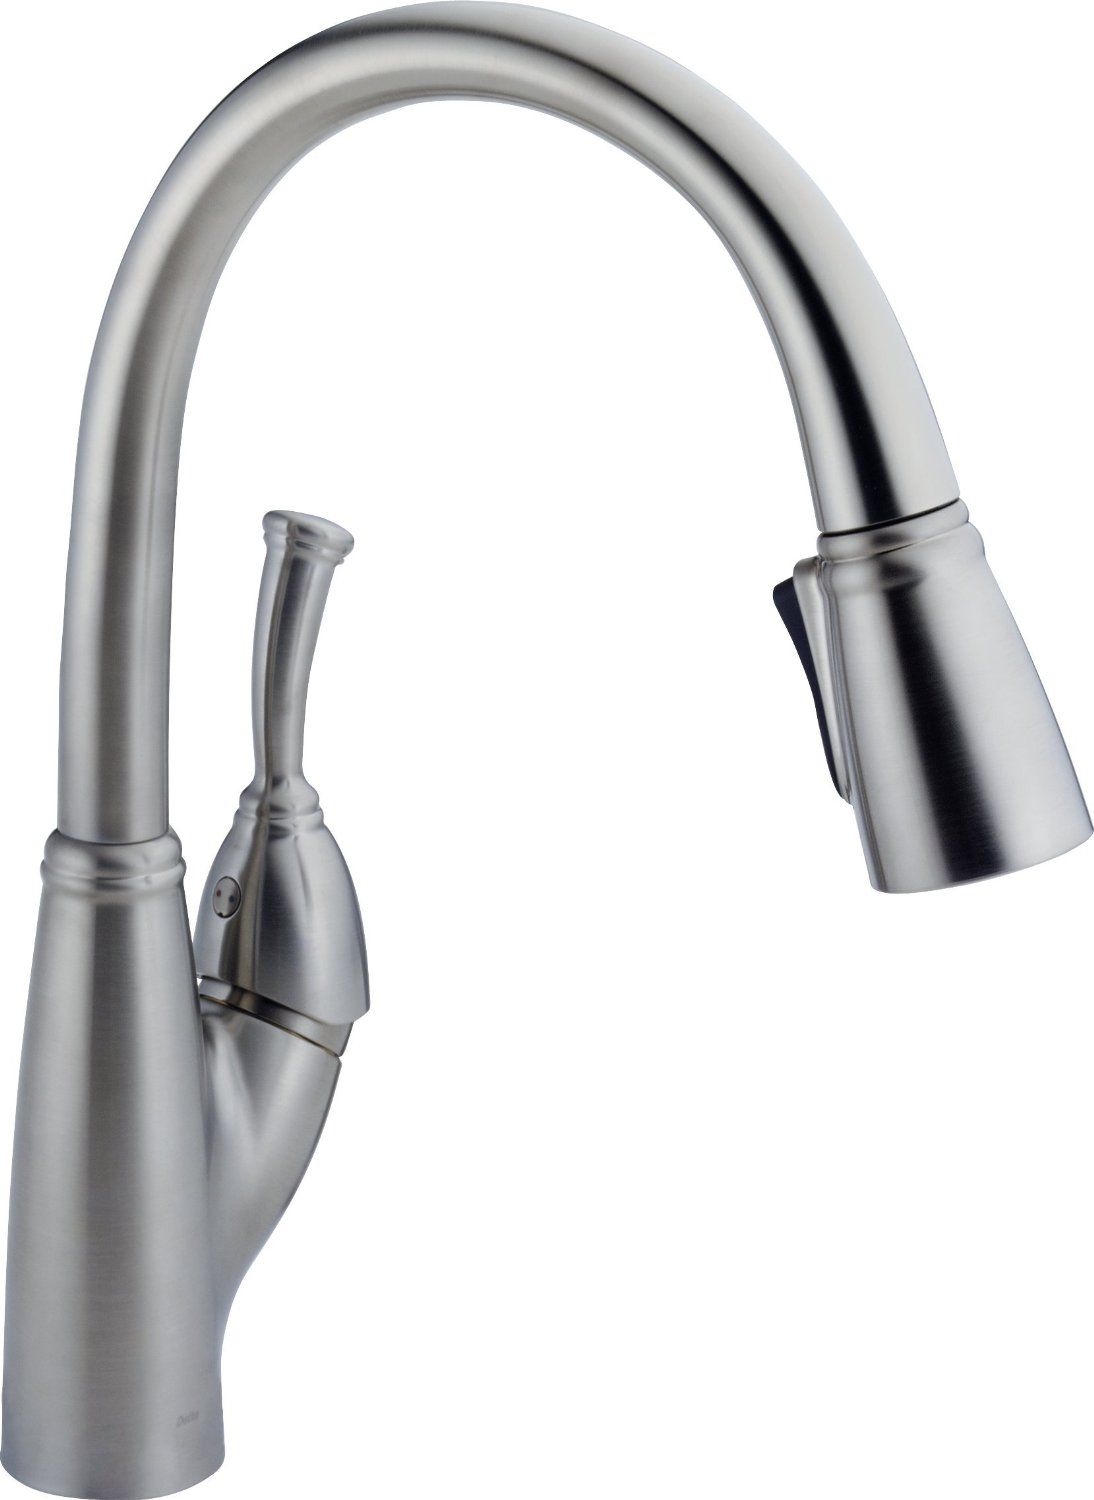 Delta 989 Kitchen Faucets Kitchen Faucets Hub